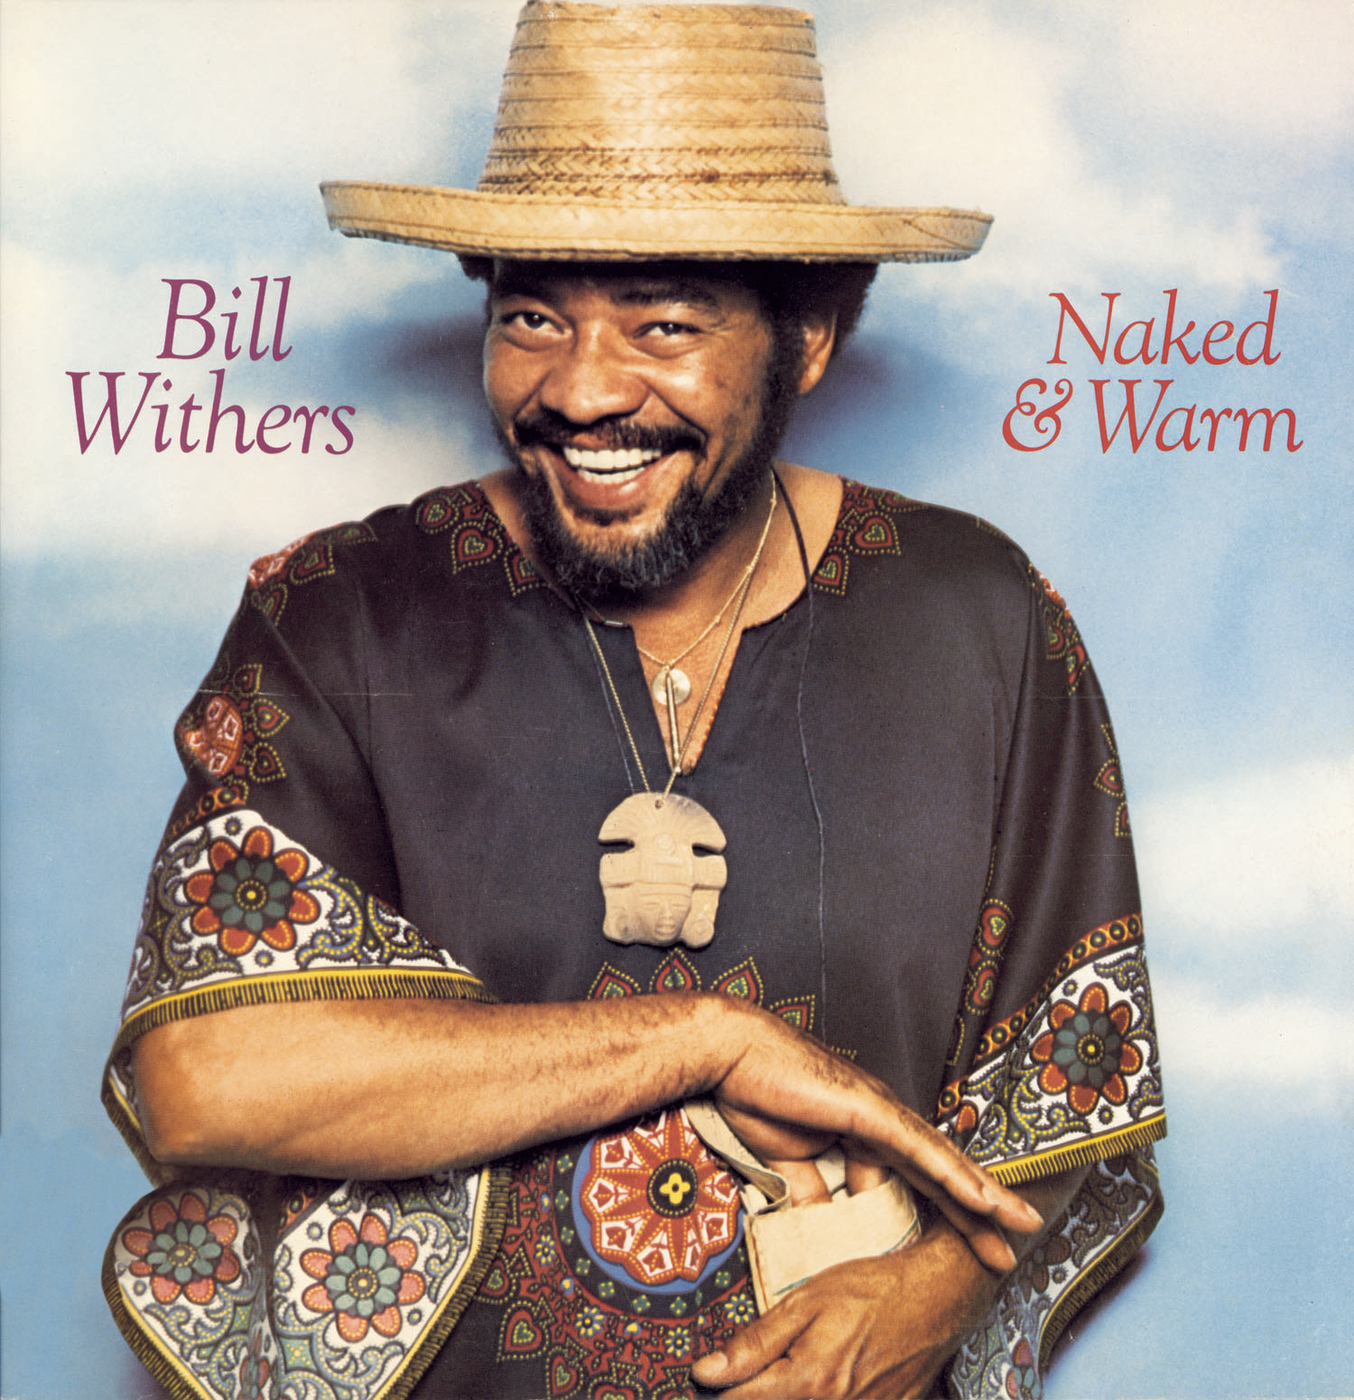 Naked & Warm - Bill Withers